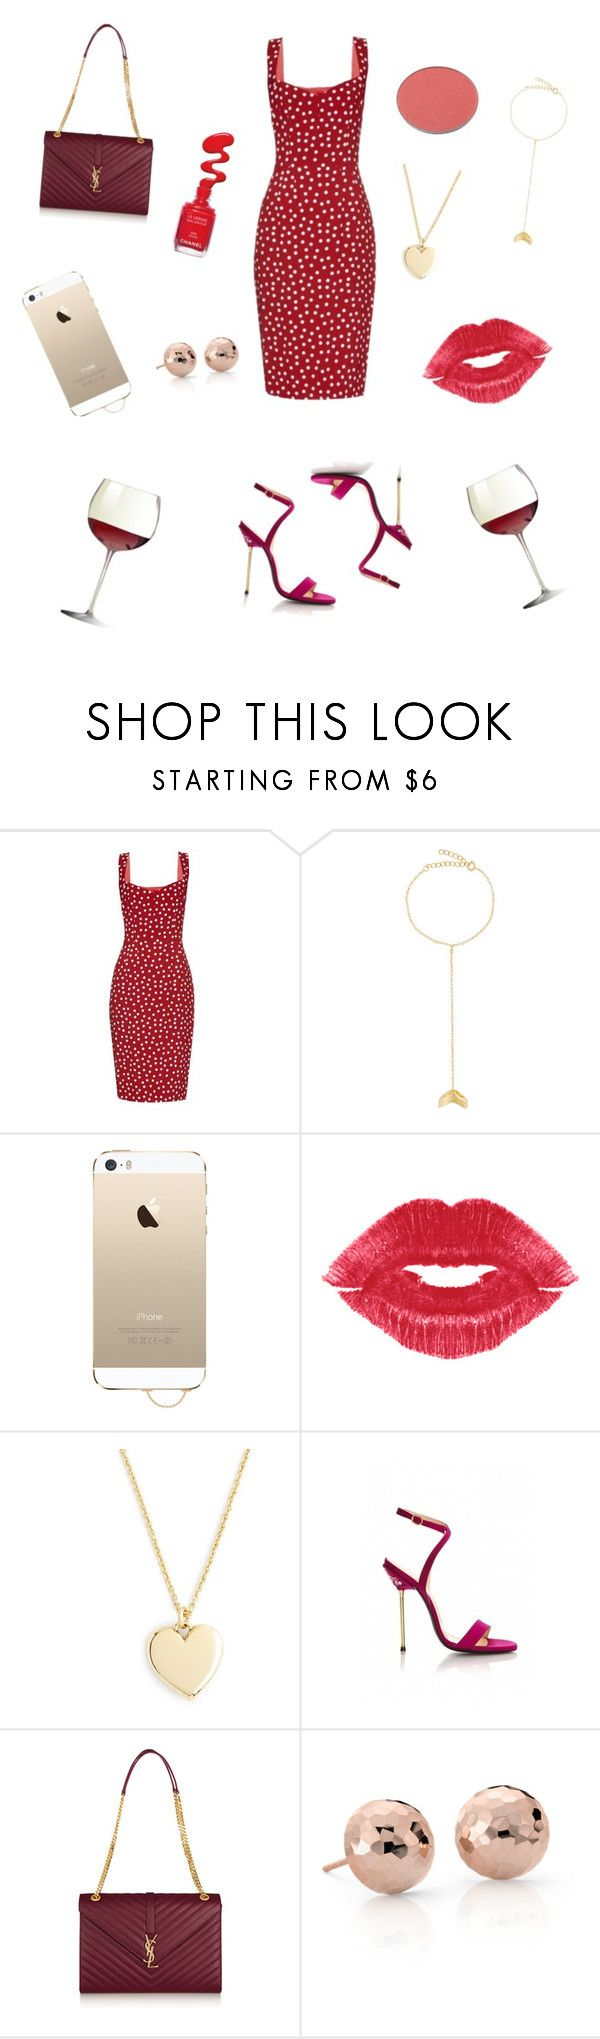 """""""Red and Gold"""" by weijin ❤ liked on Polyvore featuring Dolce&Gabbana, Arme De L'Amour, Agent 18, J.Crew, Virgos Lounge, Yves Saint Laurent, Blue Nile and Chantecaille"""